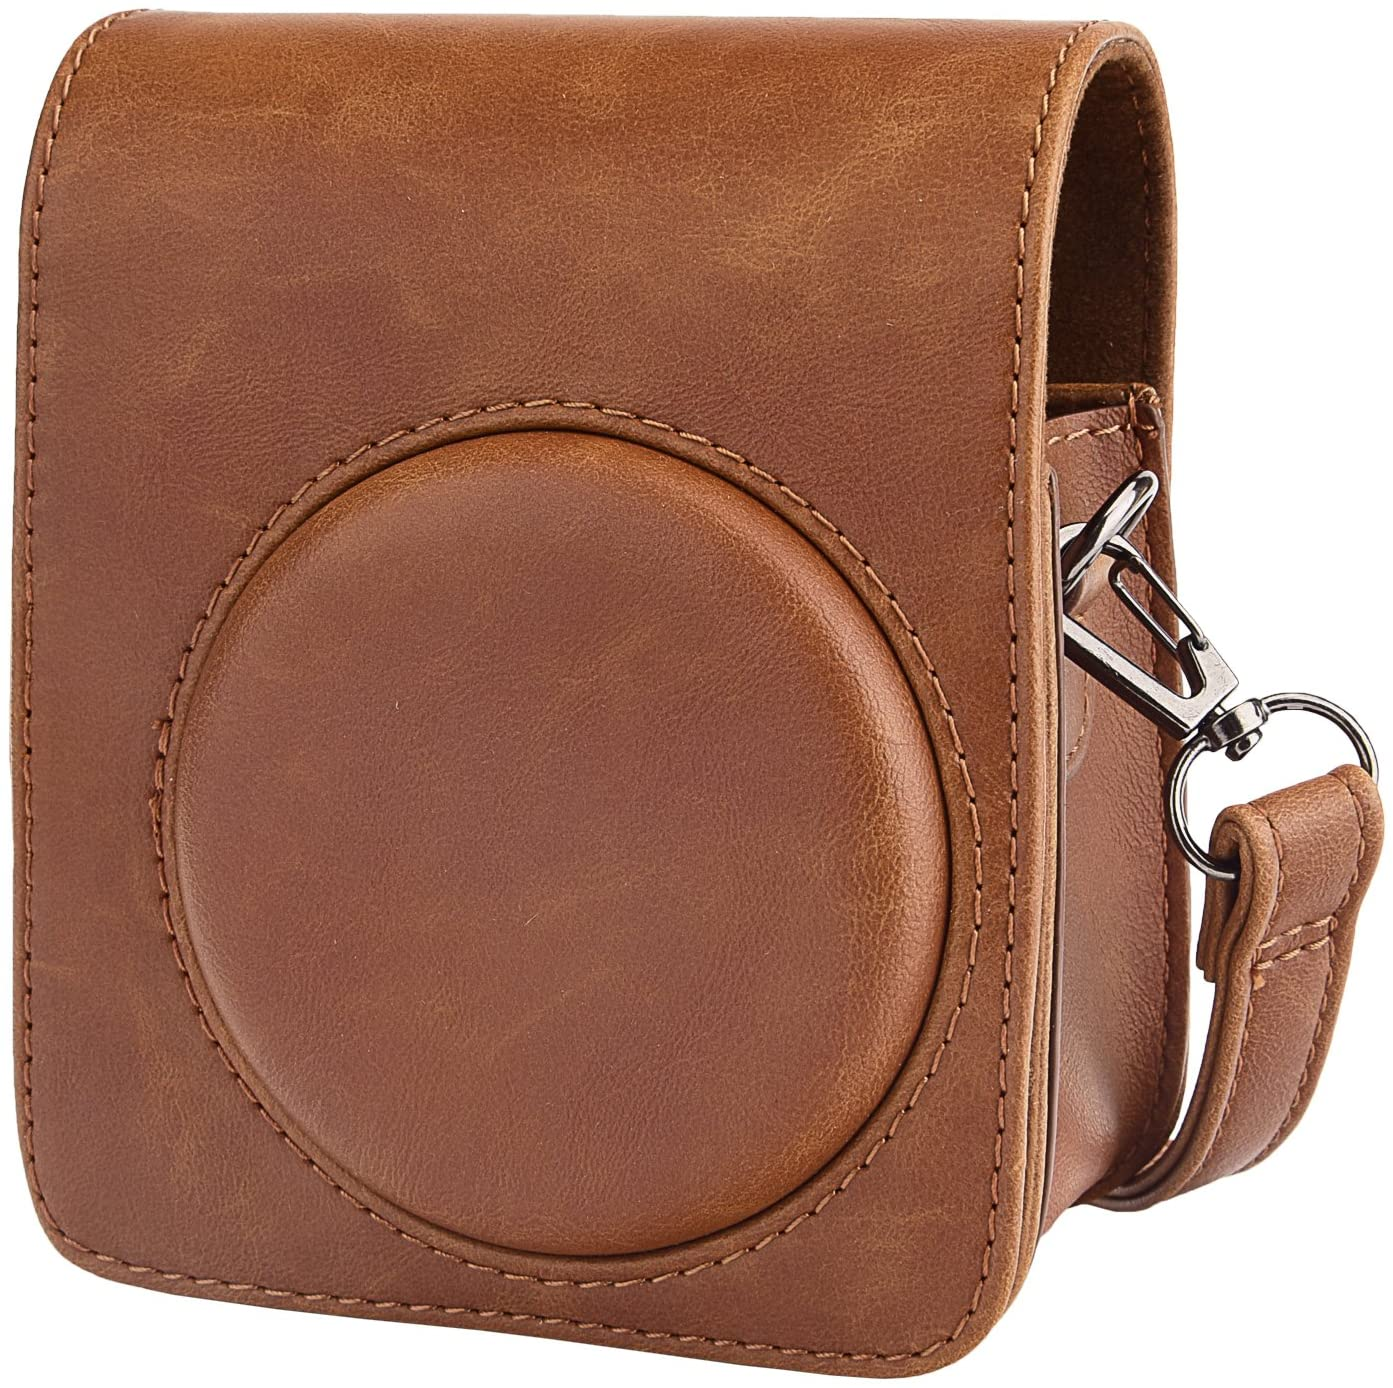 Fujifilm Instax Mini 70 Leather Case Brown